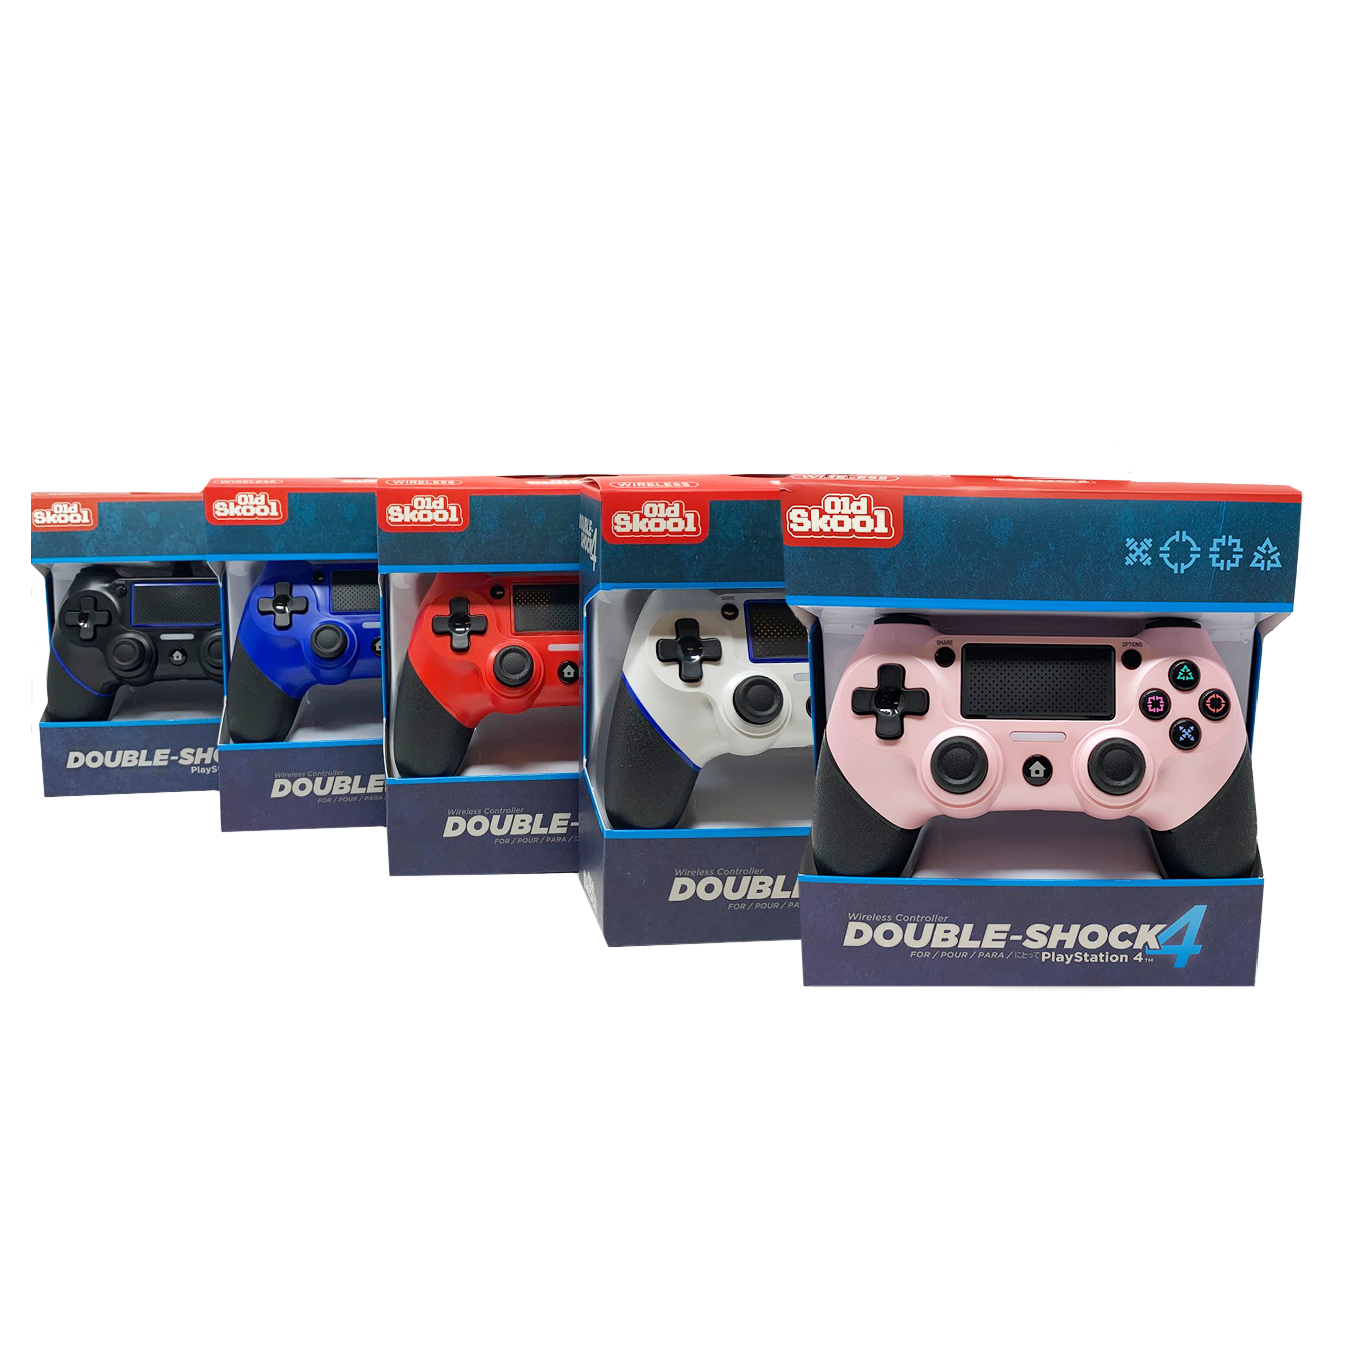 PS4 WIRELESS DOUBLE-SHOCK 4 CONTROLLERS (5-PACK)